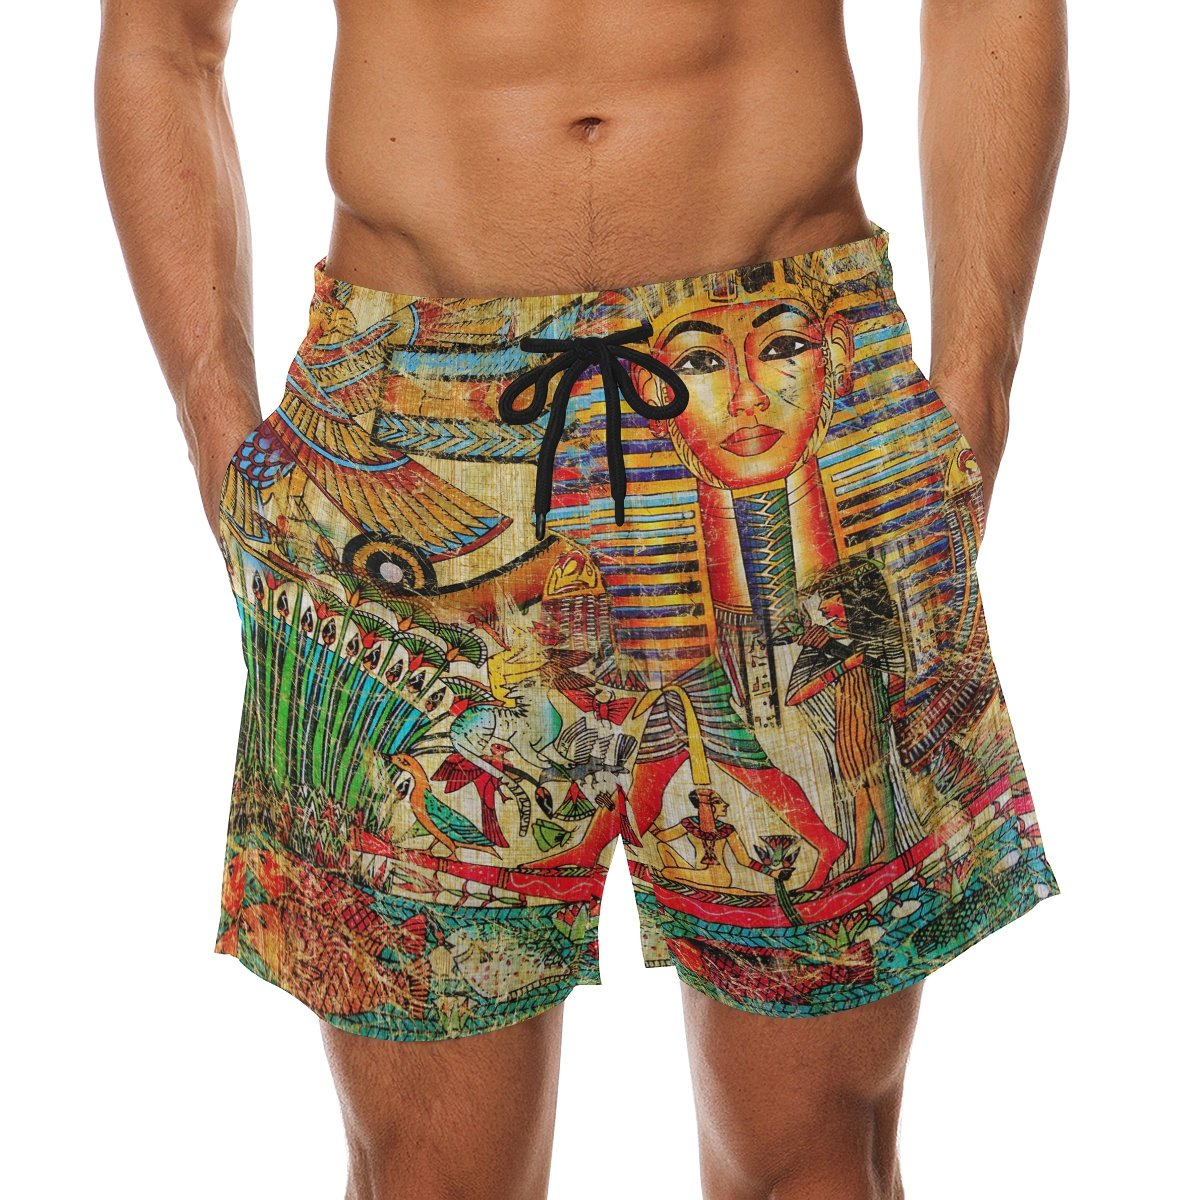 LORVIES Mens Vintage Egyptian Style Beach Board Shorts Quick Dry Swim Trunk